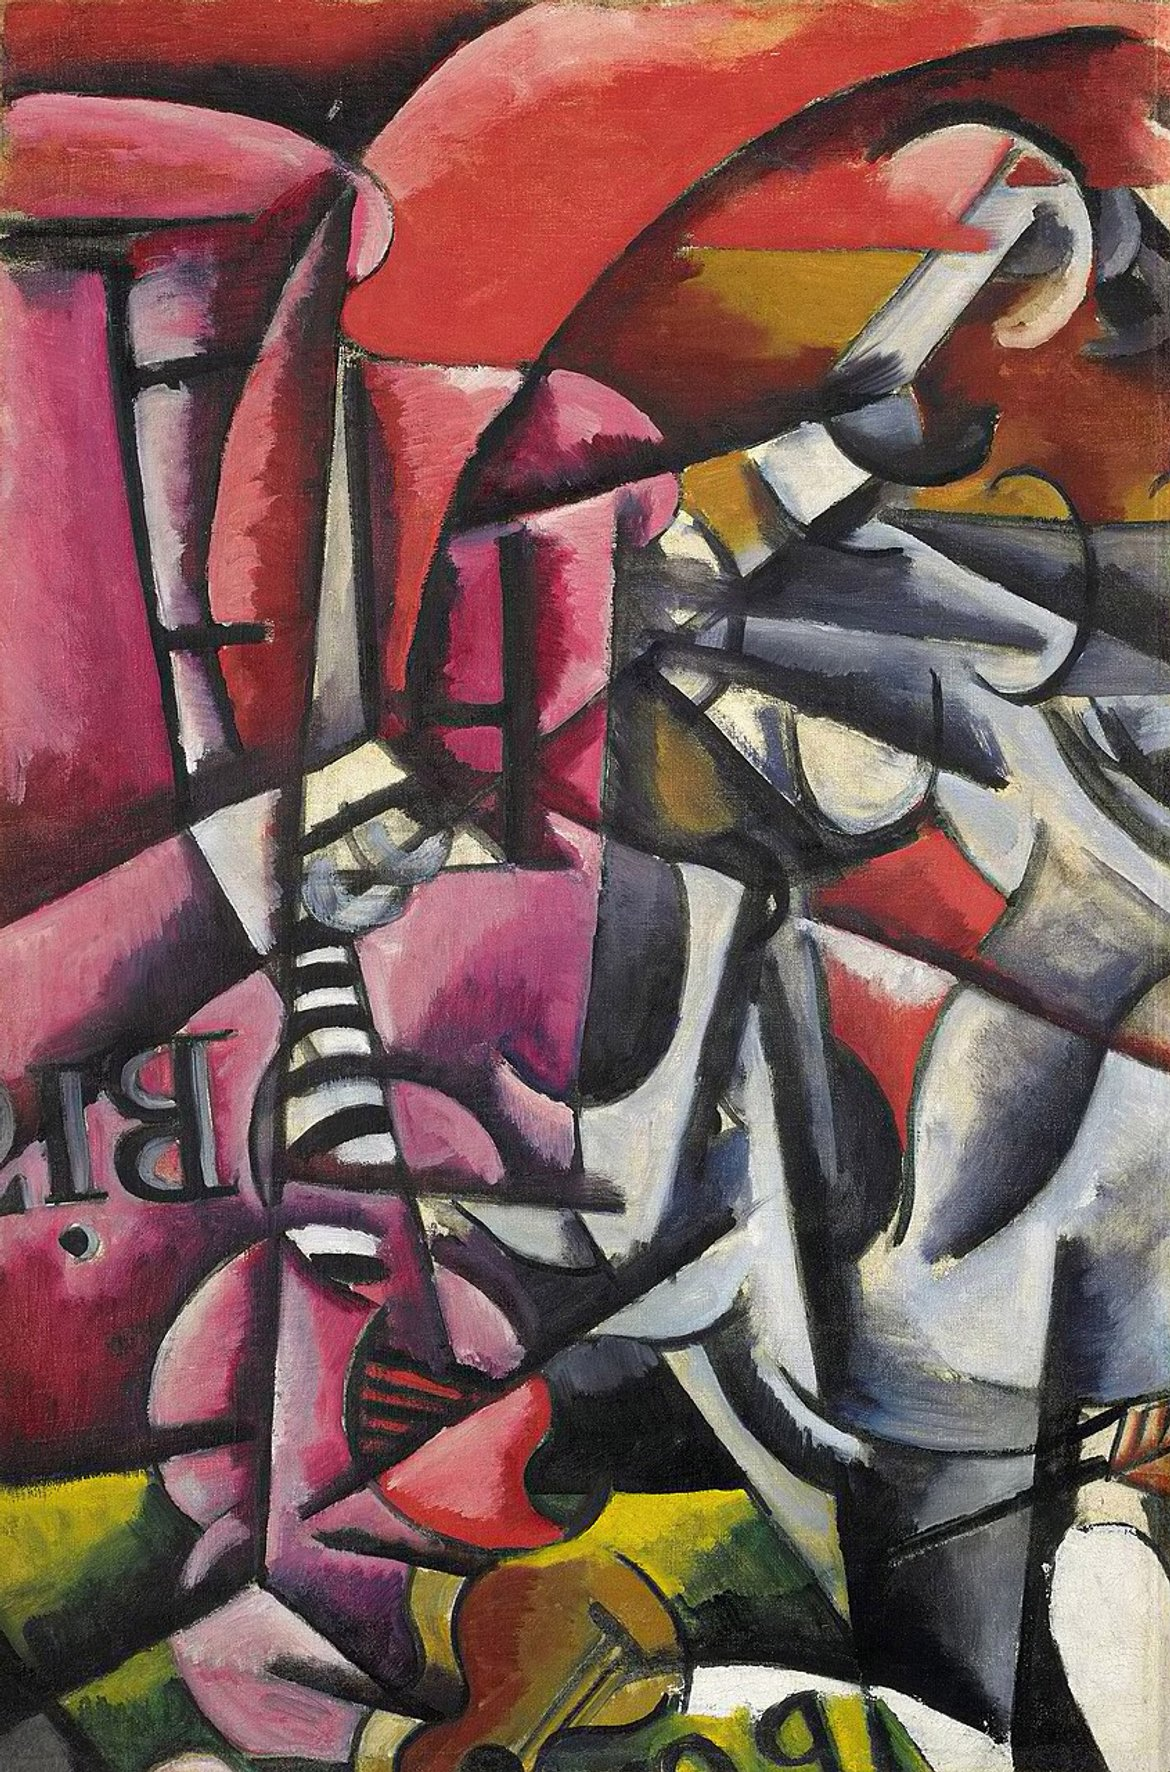 Online Course: Women of the 20th Century Art World